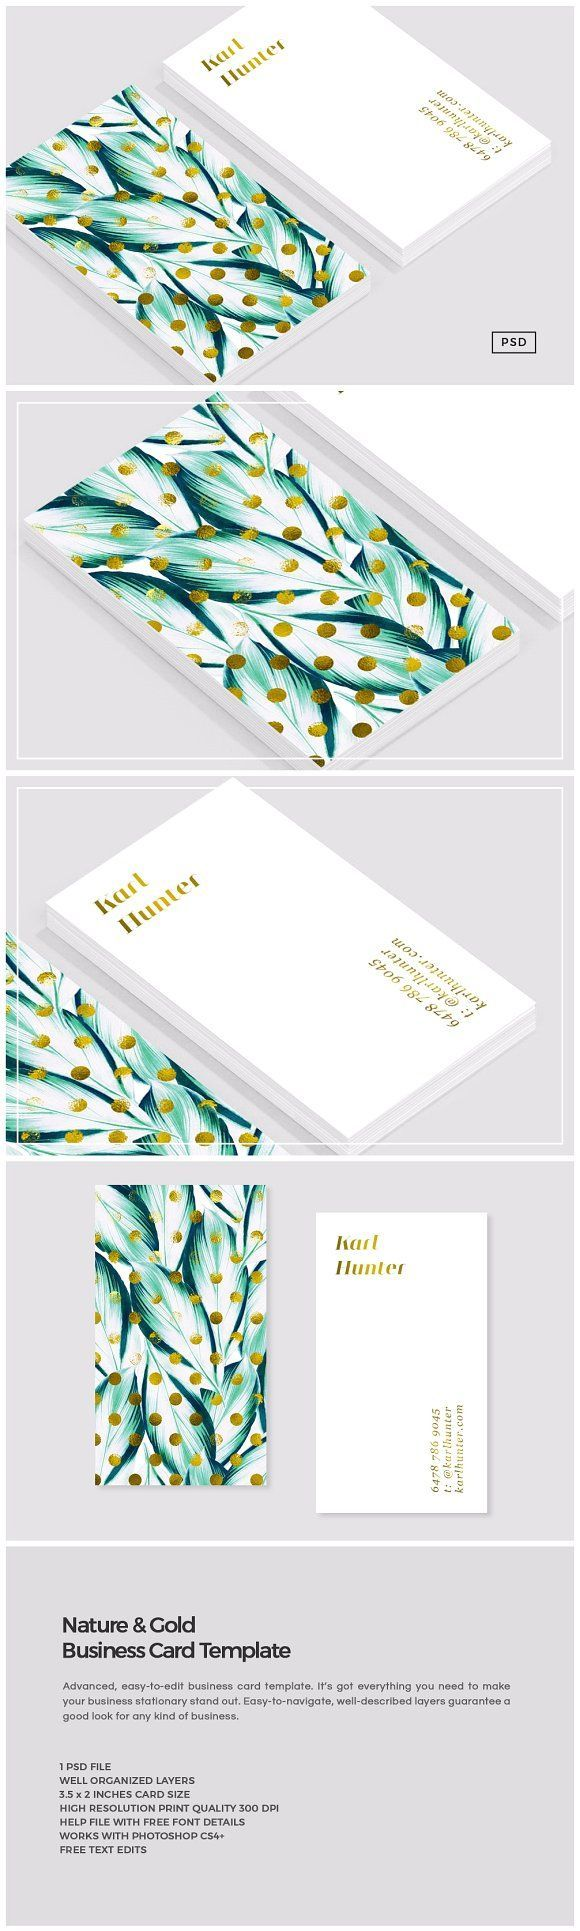 Business infographic nature gold business card for Business source label templates